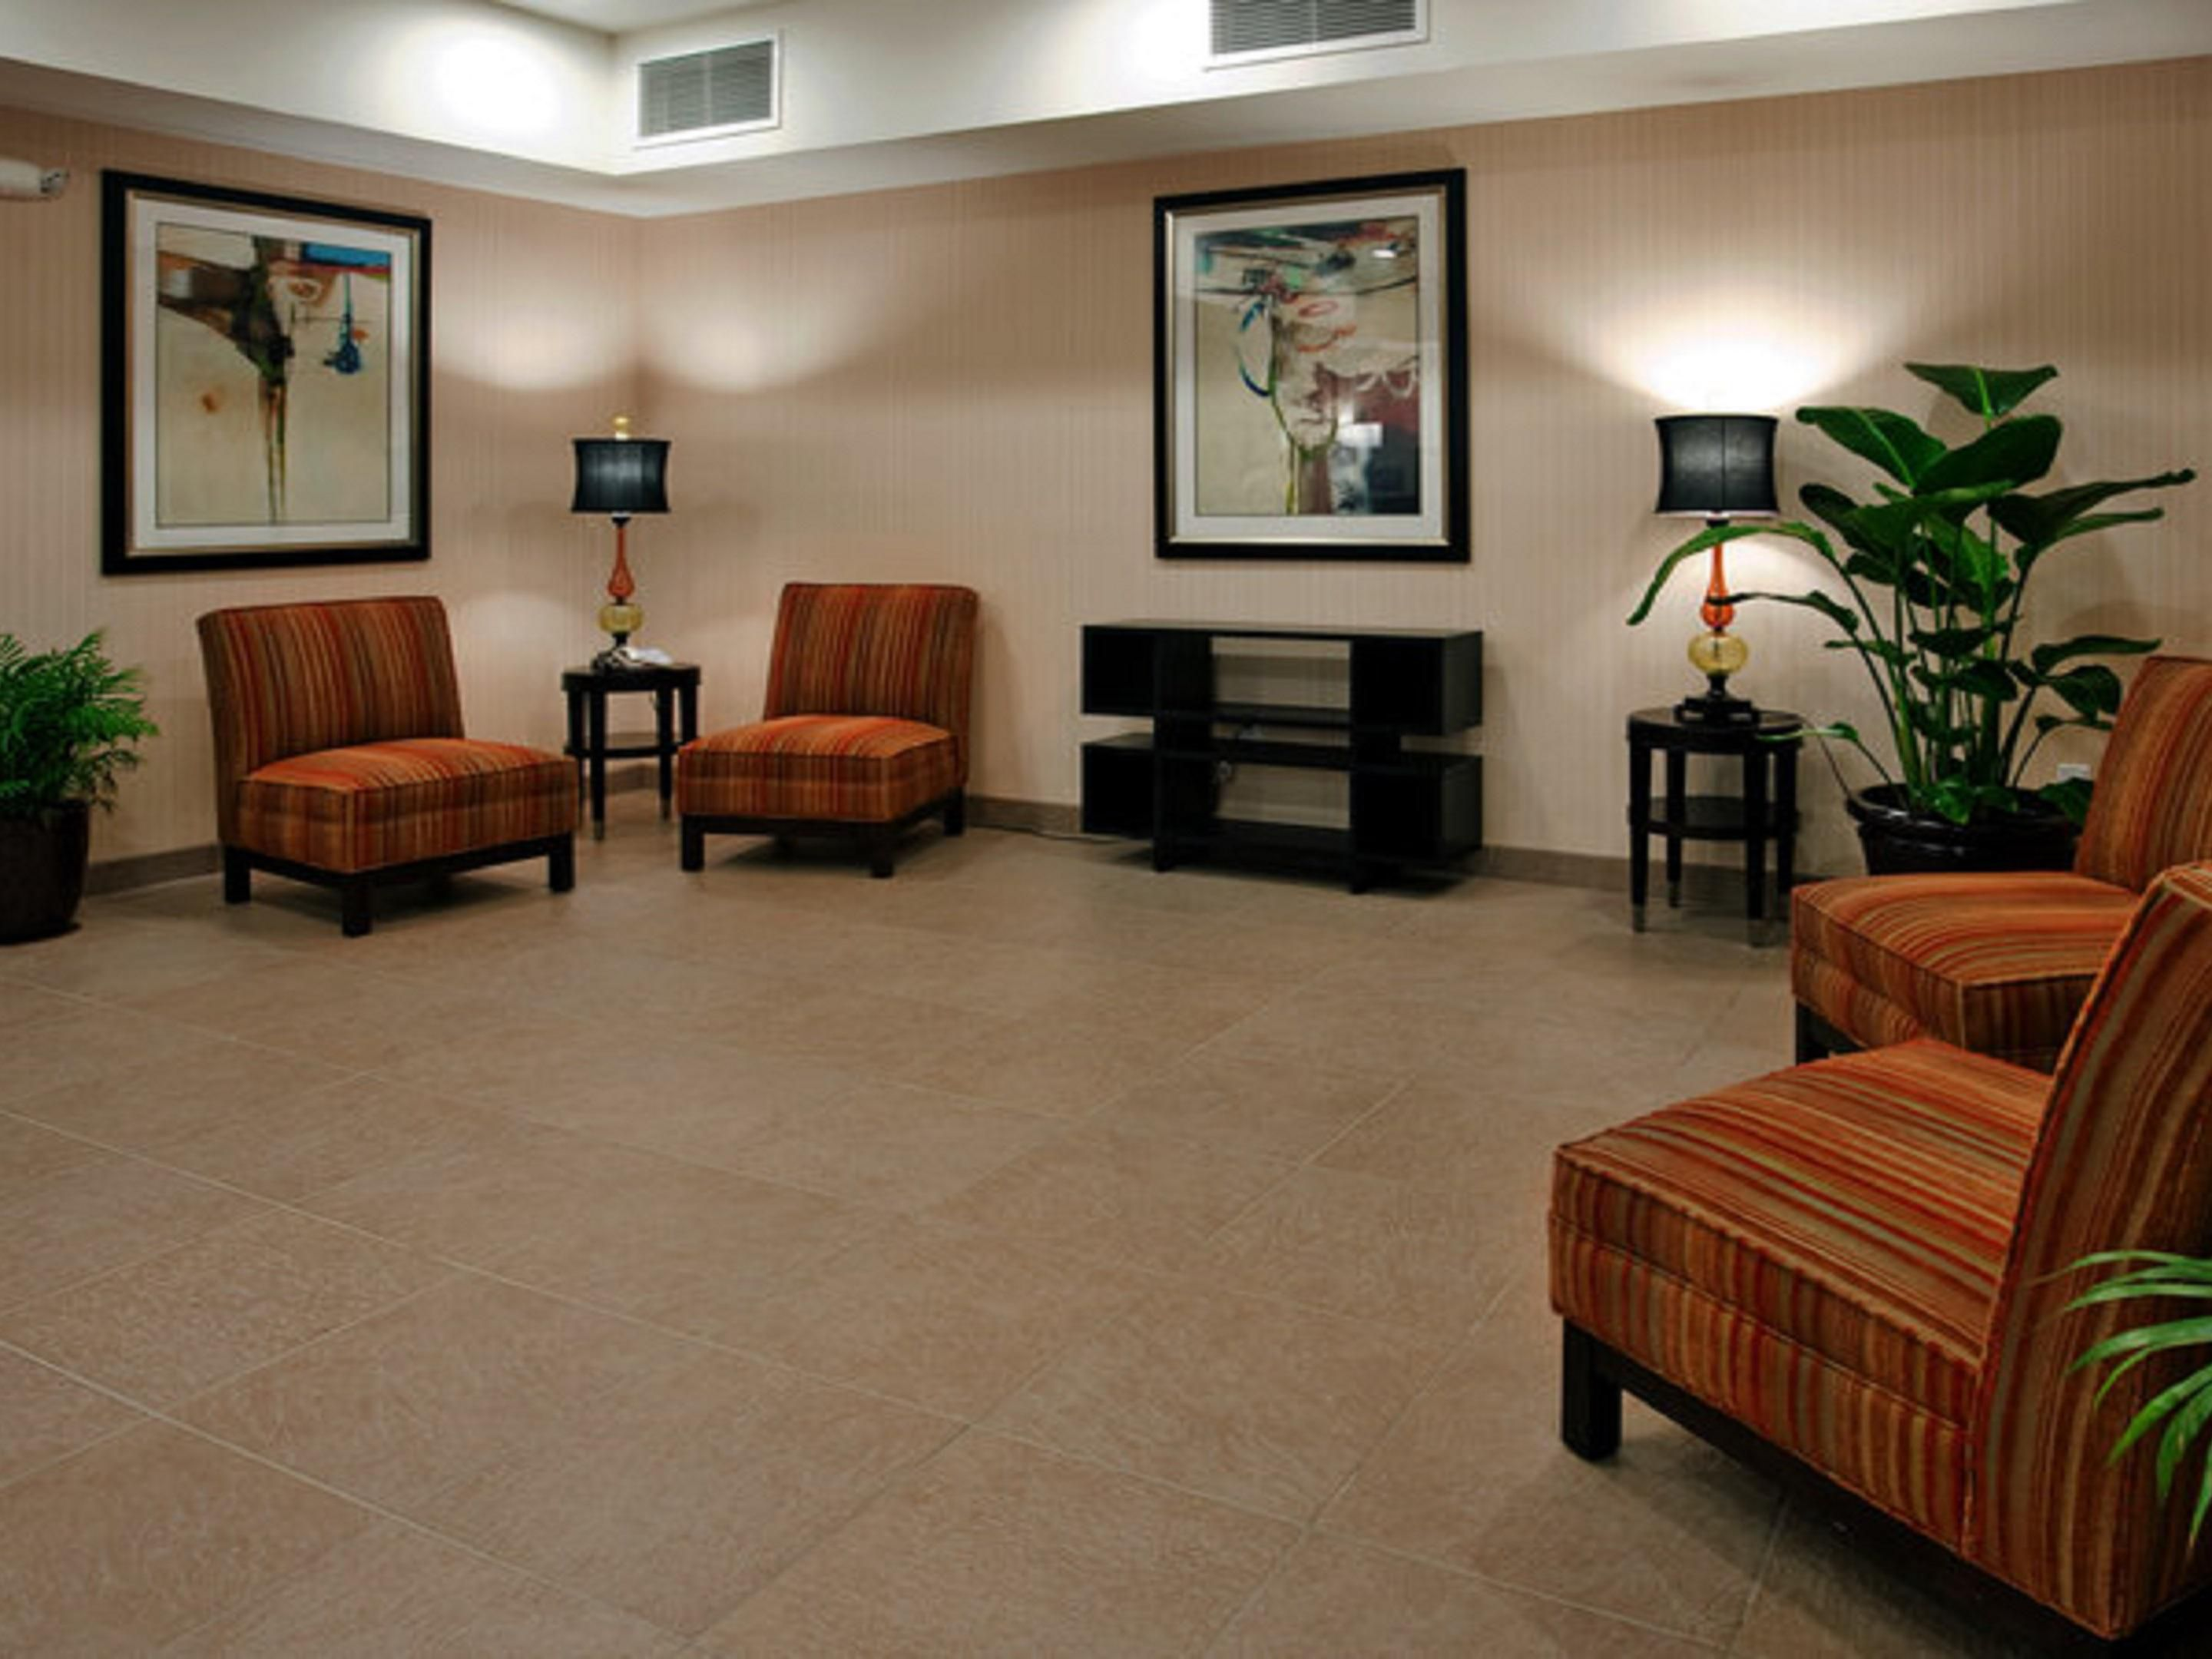 Relax in the hotel lobby at the Holiday Inn Express and Suites